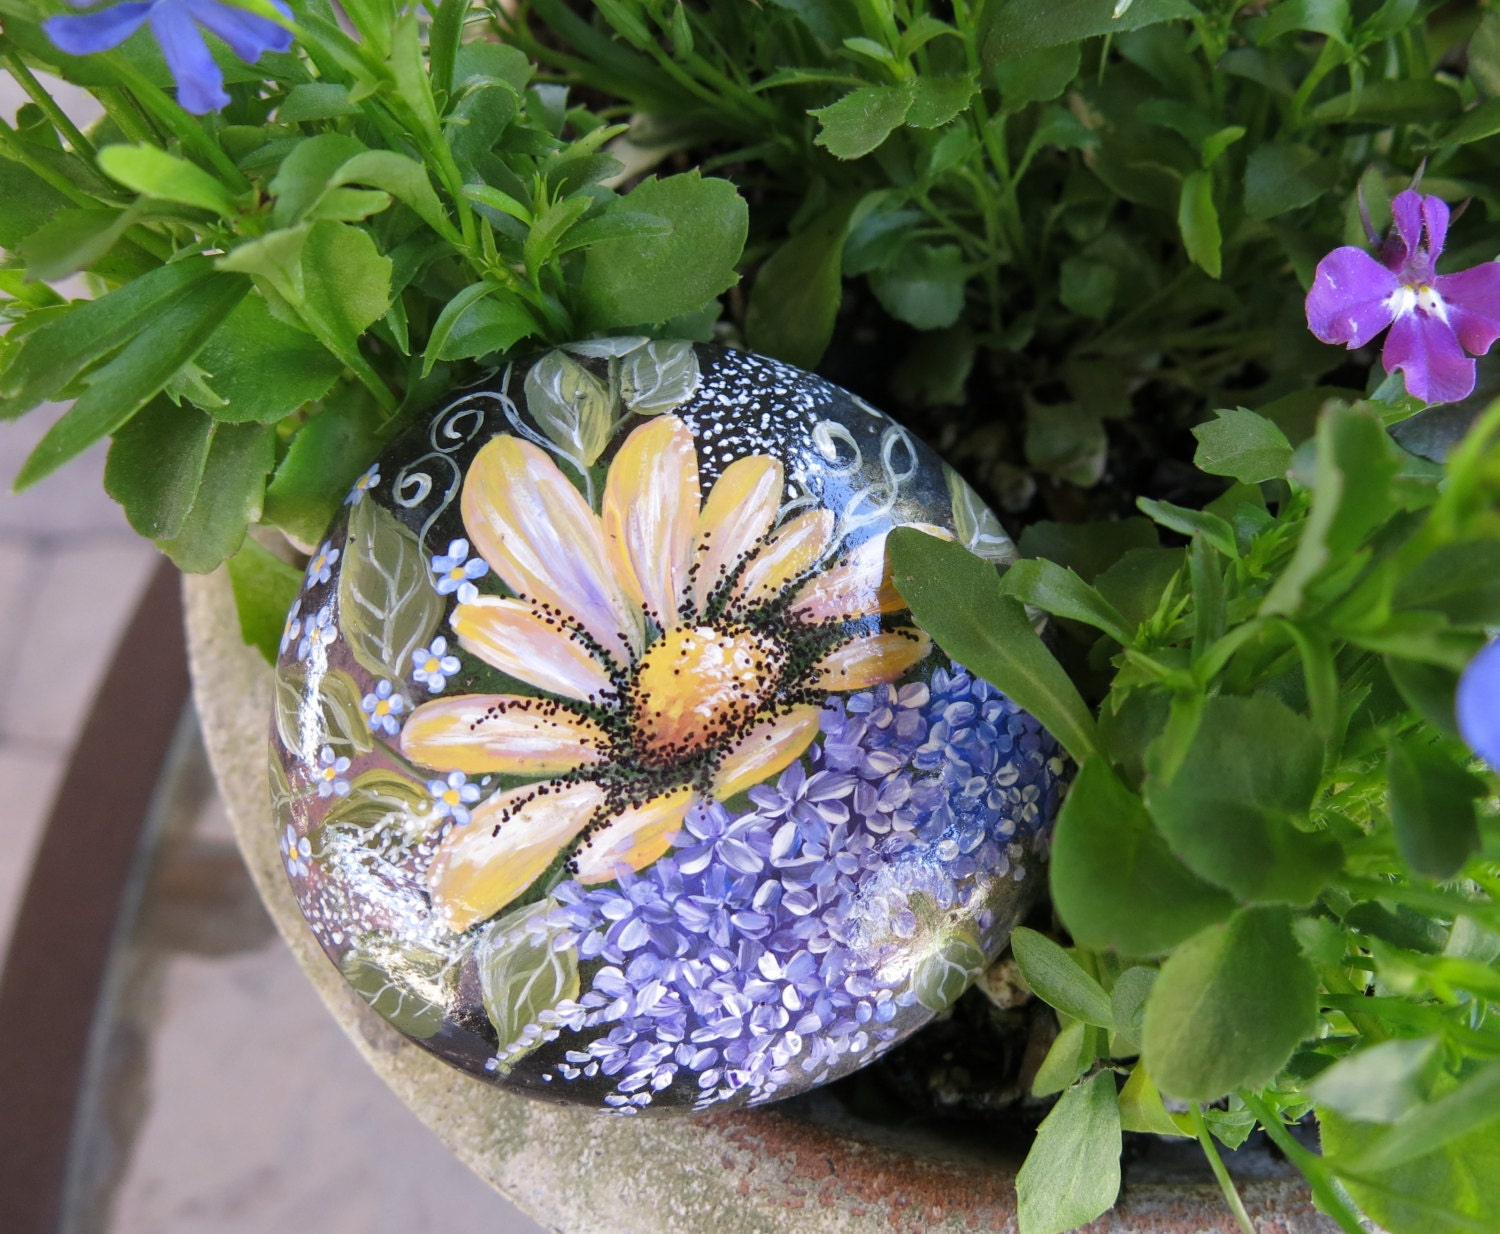 Popular items for rock garden decor on Etsy